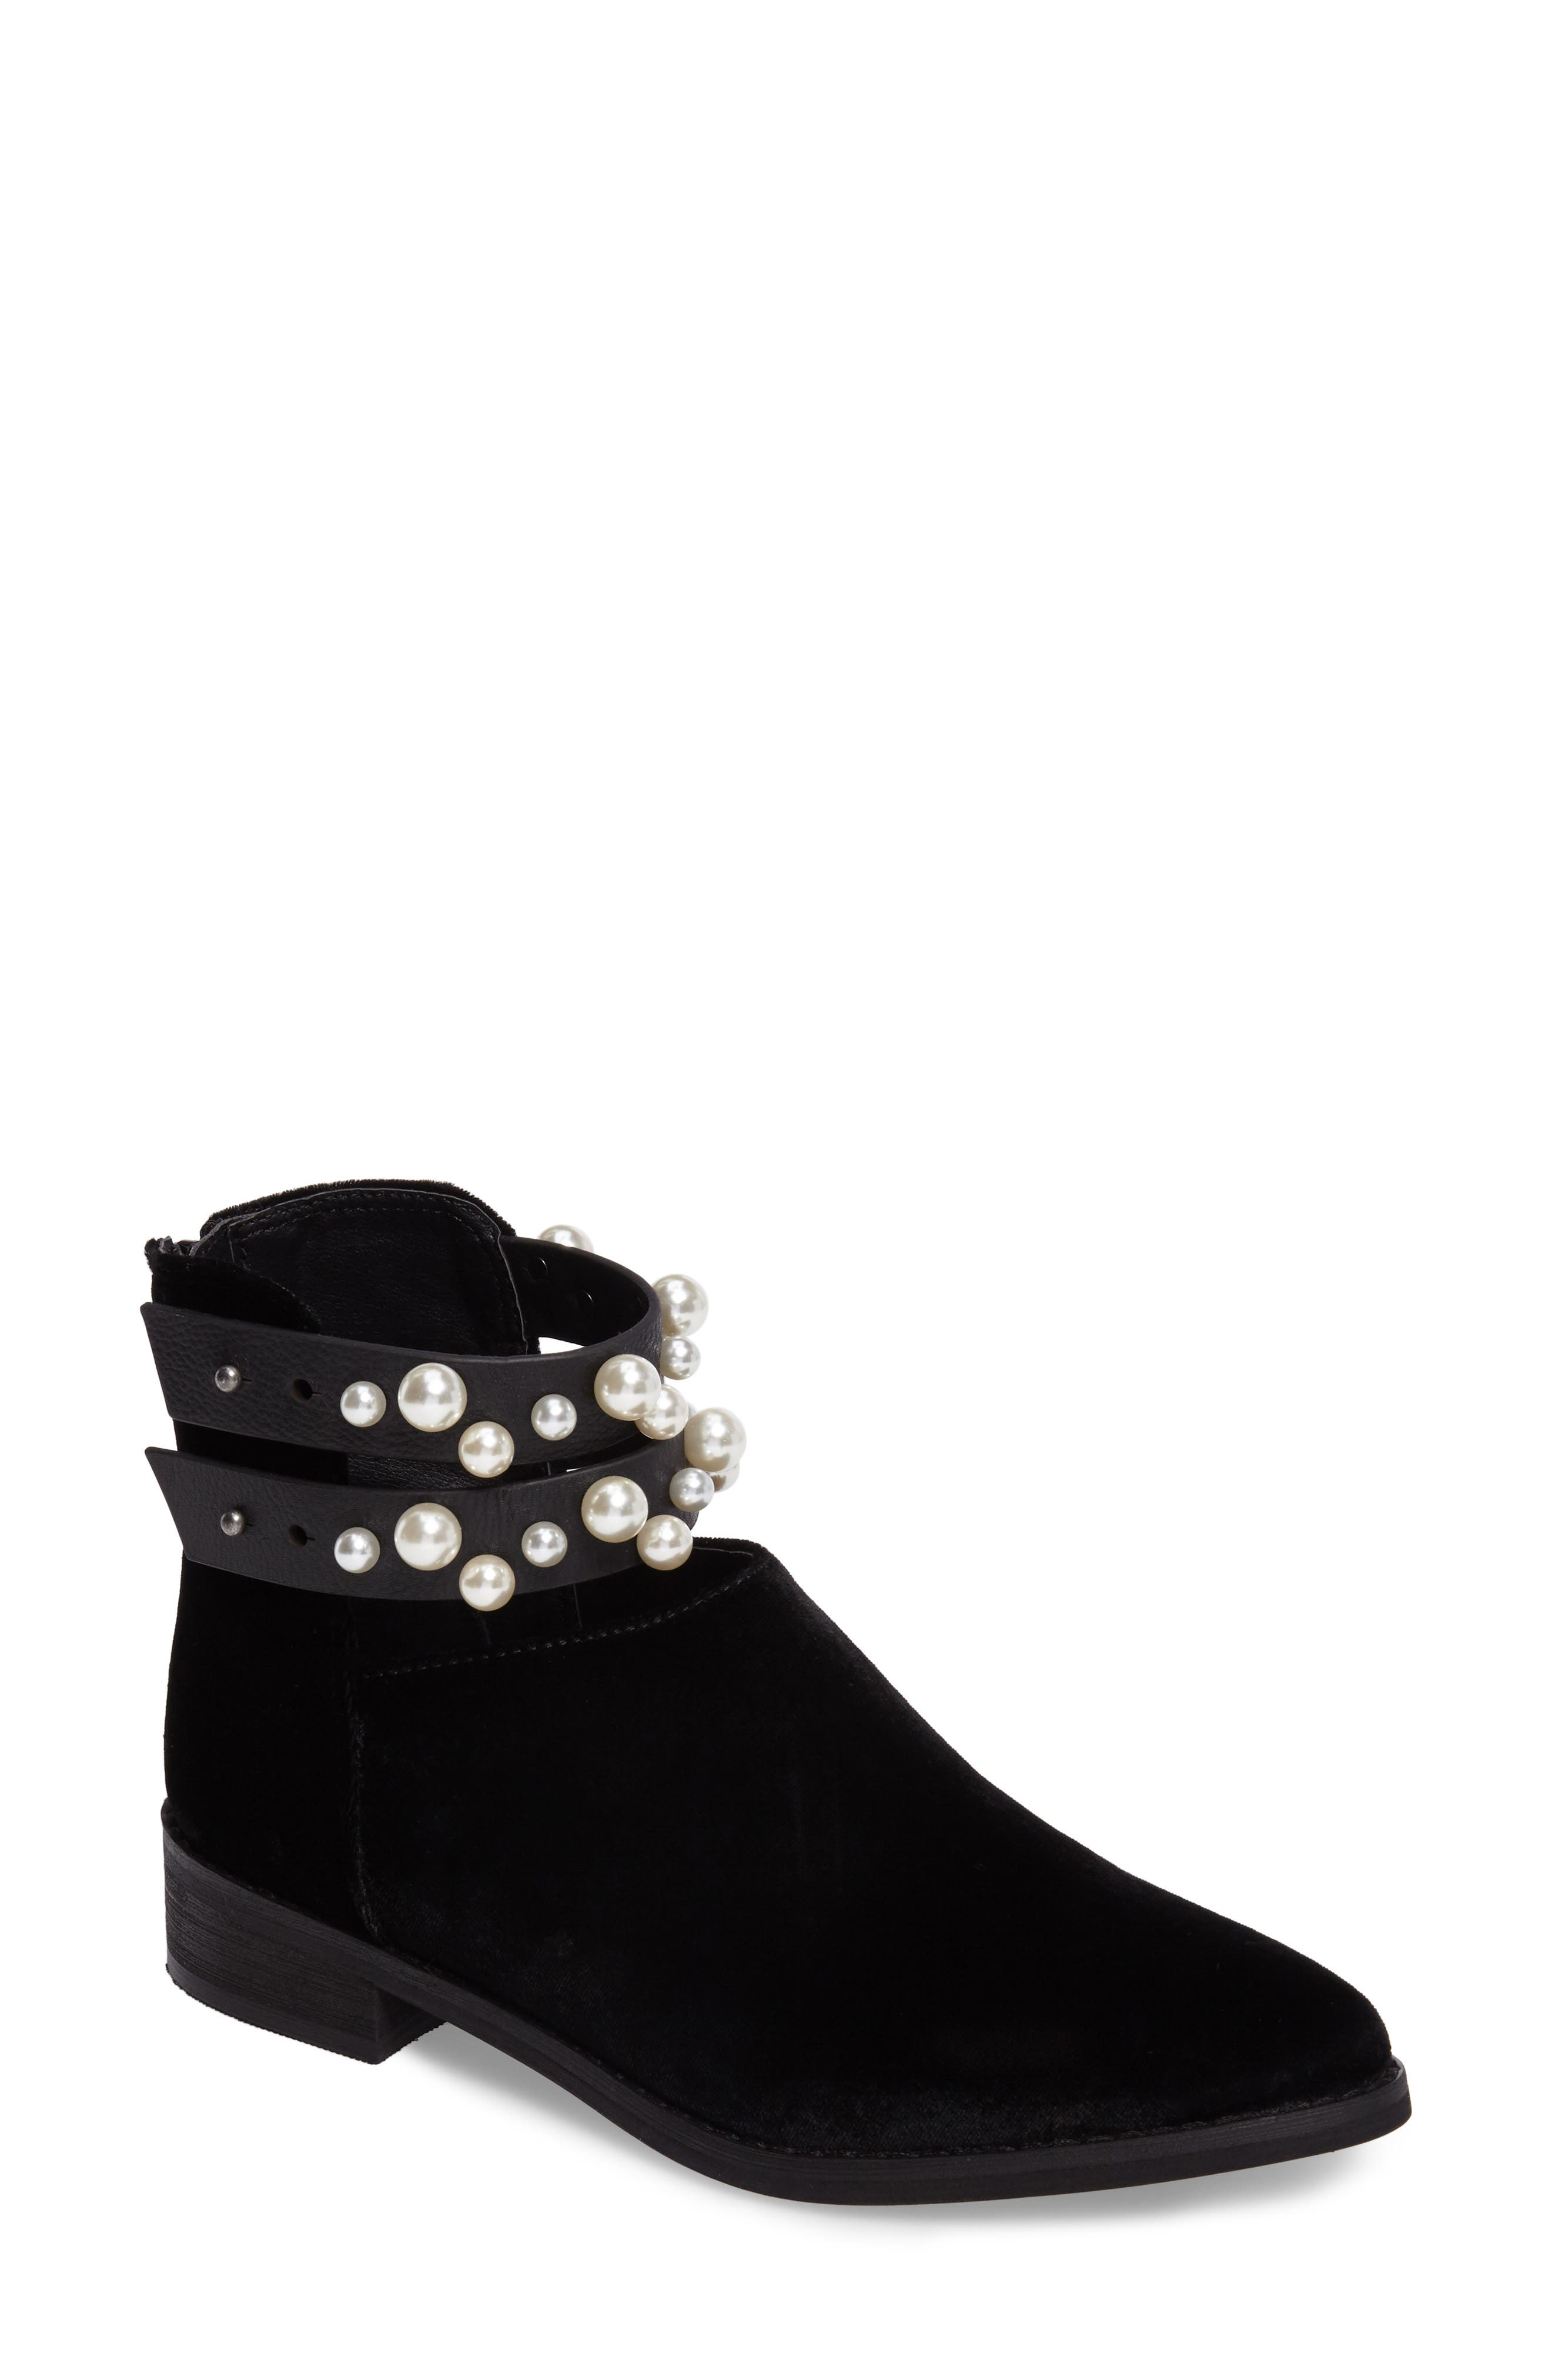 Main Image - E8 by Miista Maisie Embellished Bootie (Women)